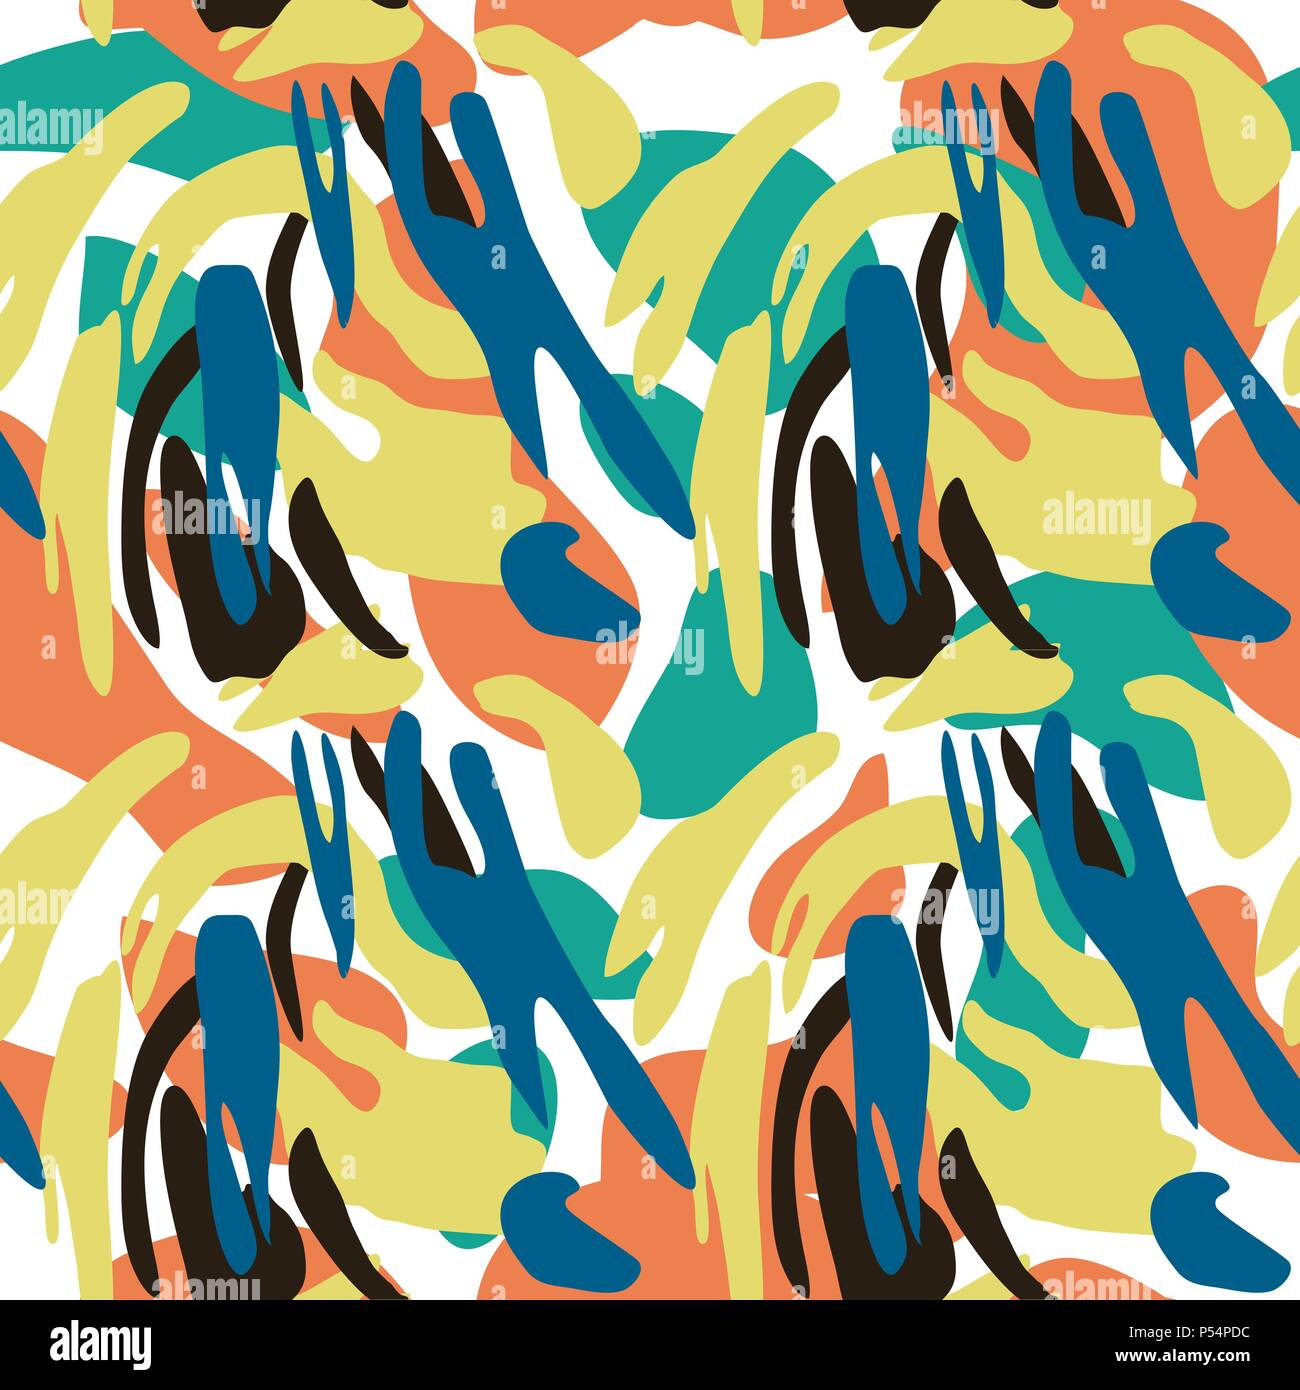 Military Blue Camouflage Seamless Pattern Stock Photos & Military ...